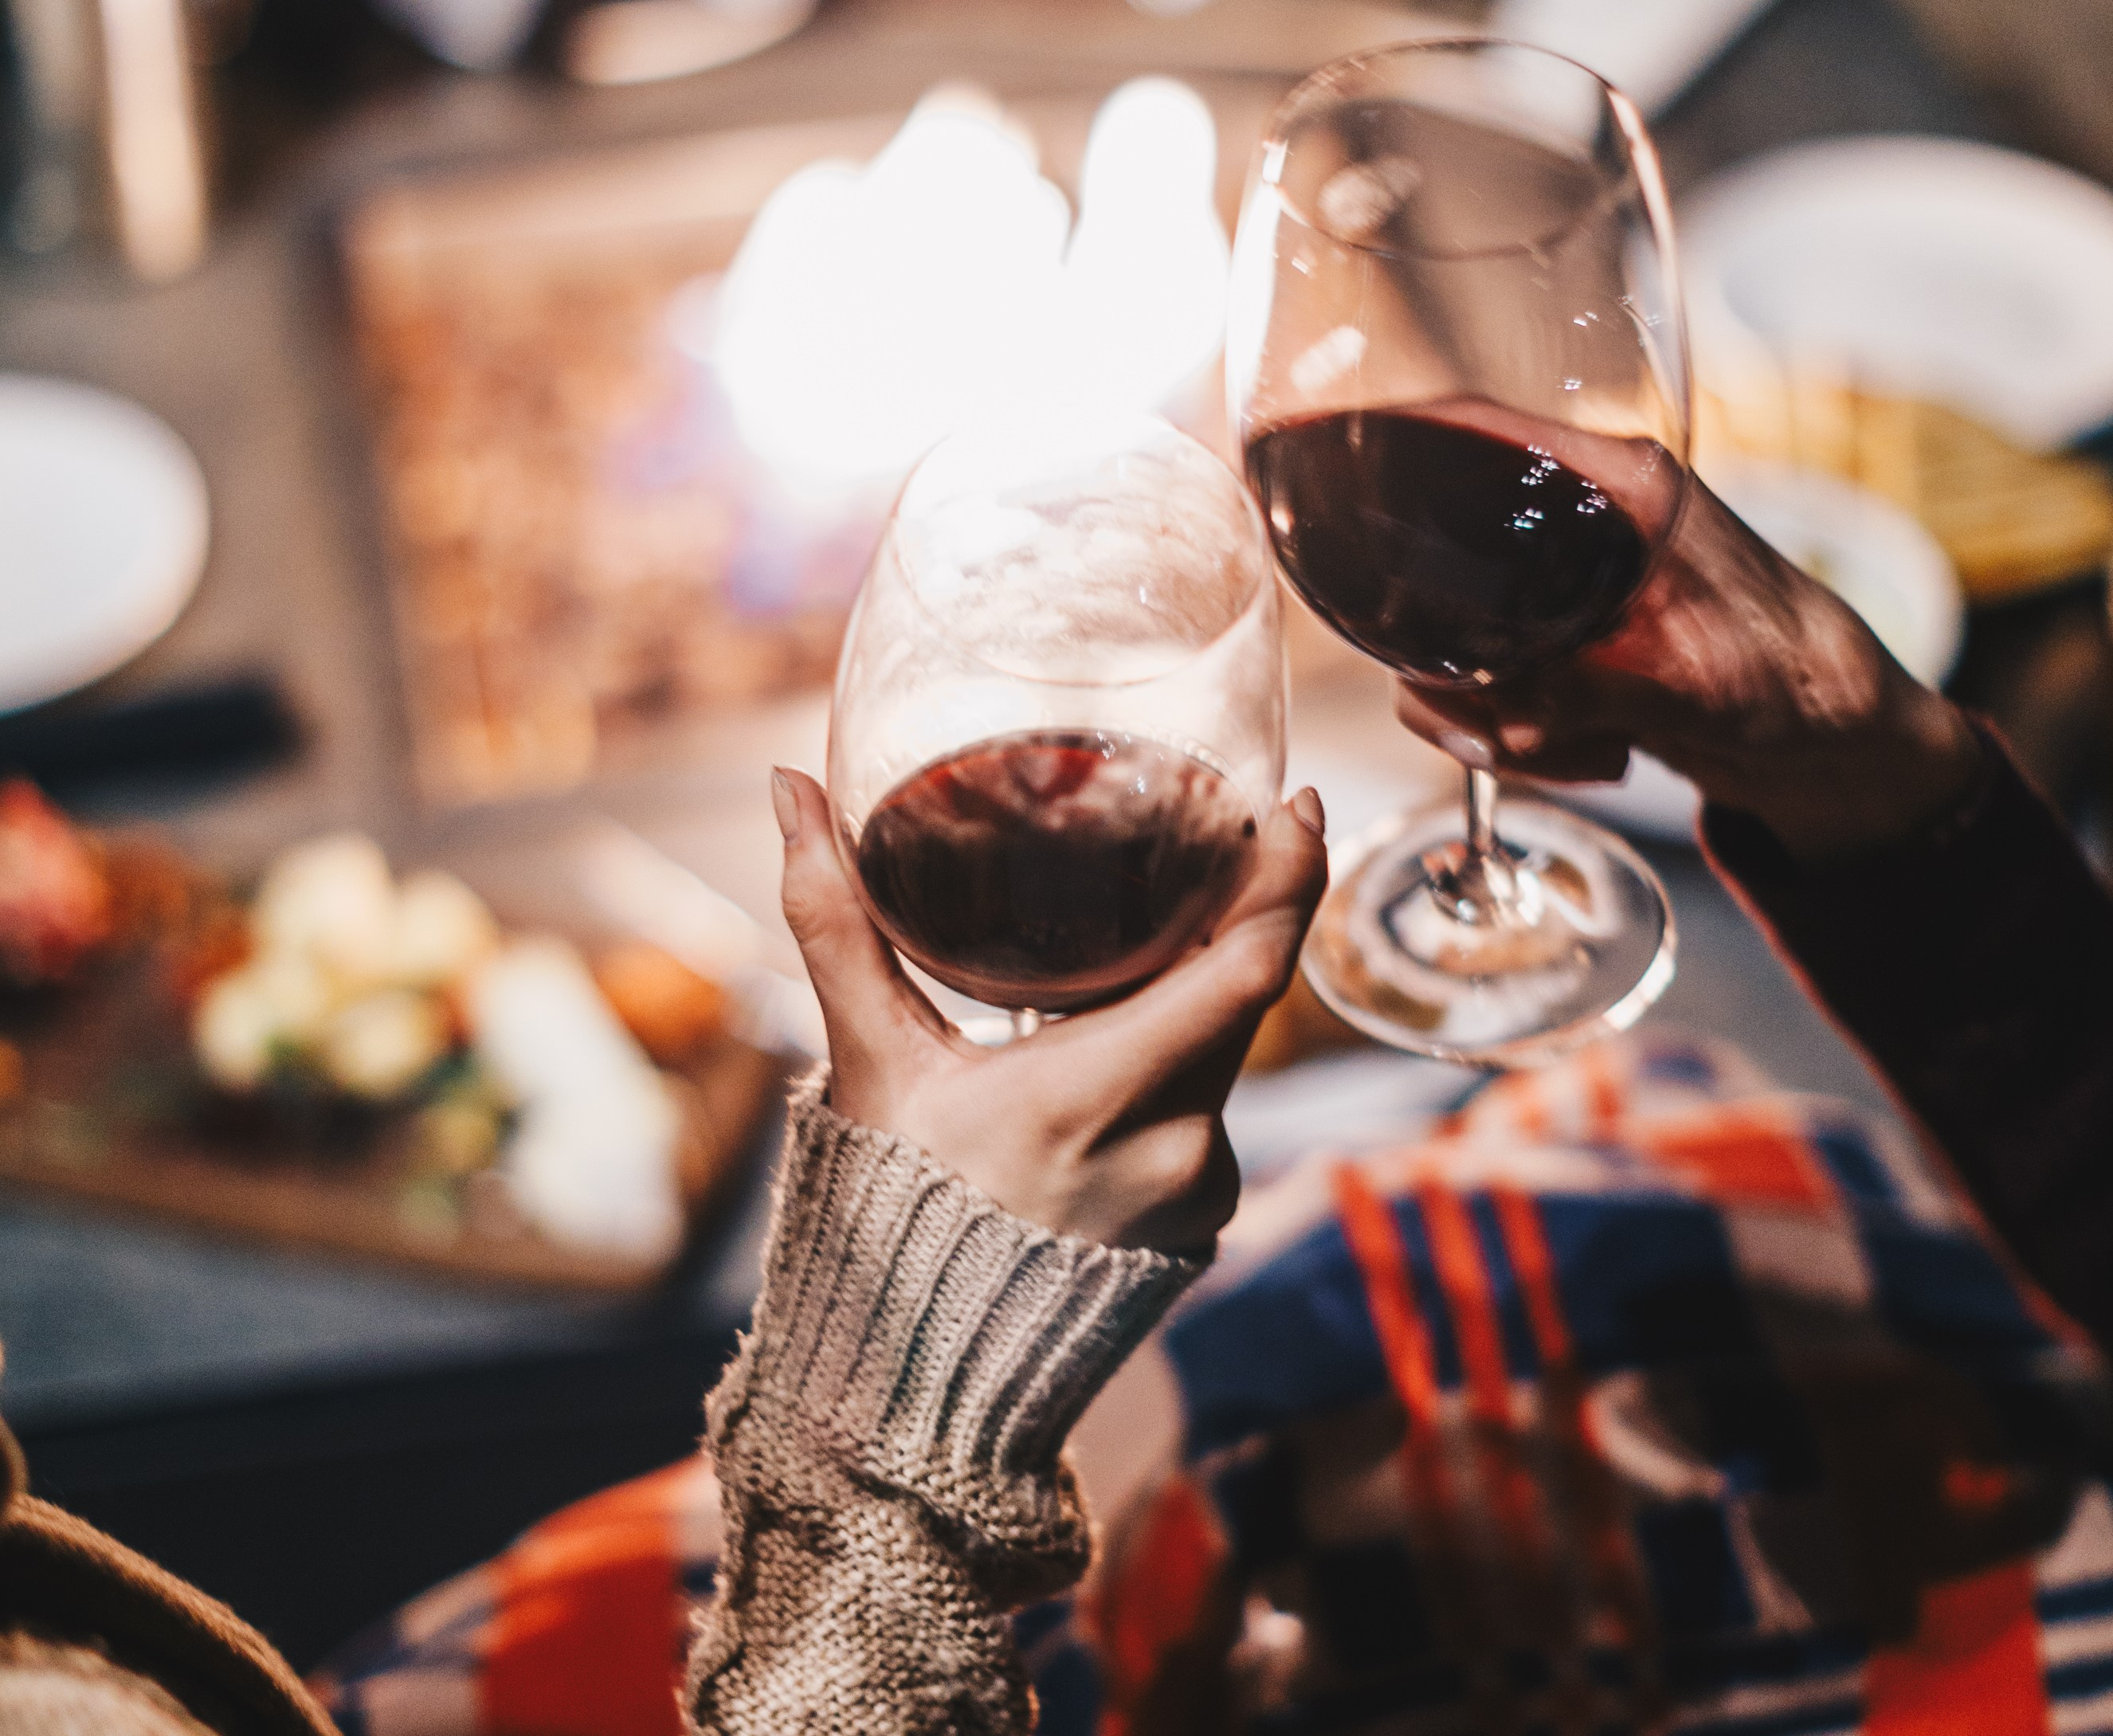 Close up of two hands clinking wine glasses over a cheese board and fire pit